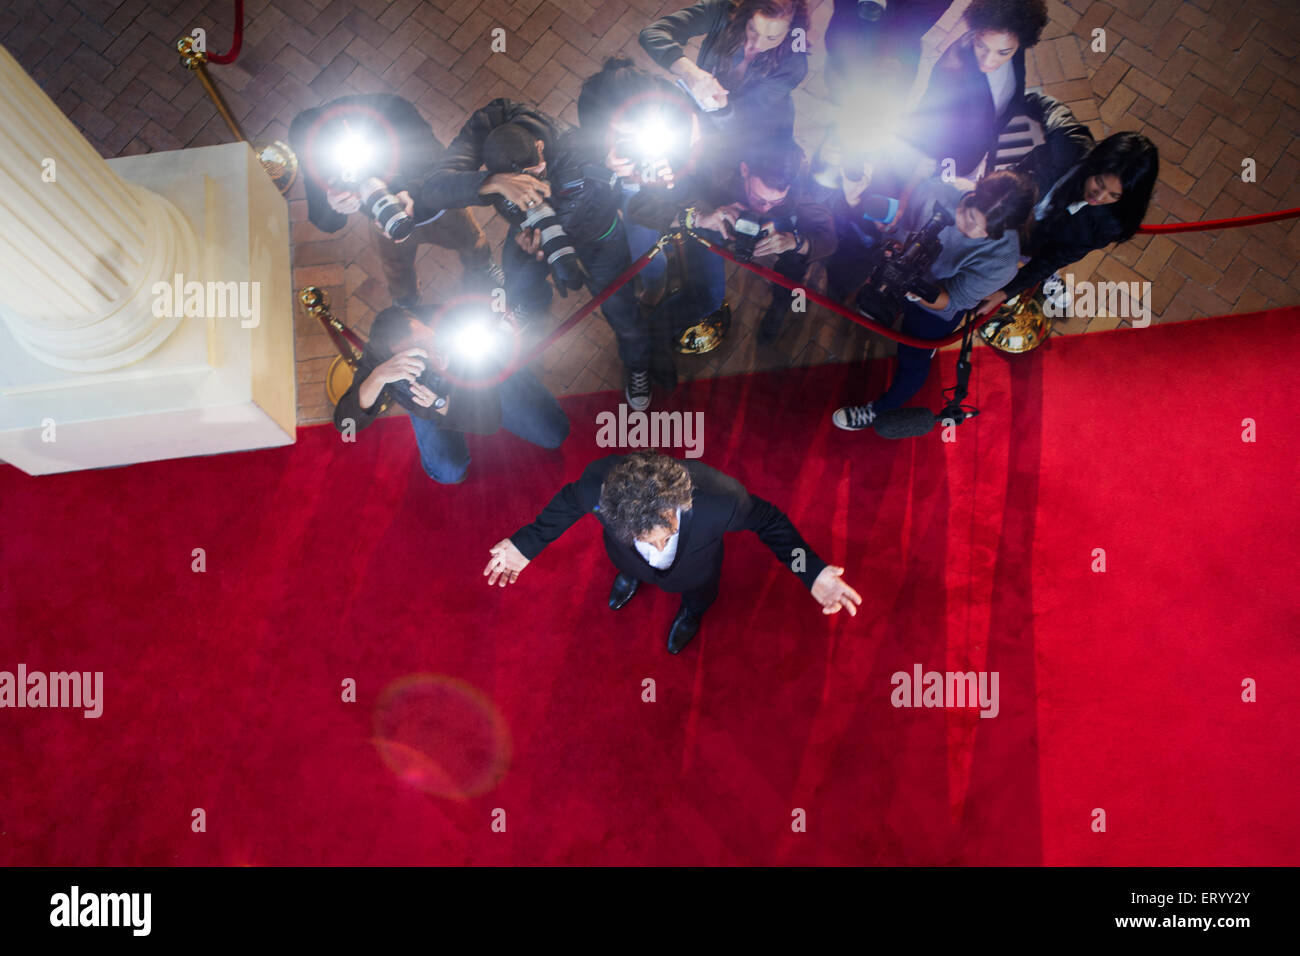 Paparazzi photographers photographing celebrity at red carpet event - Stock Image